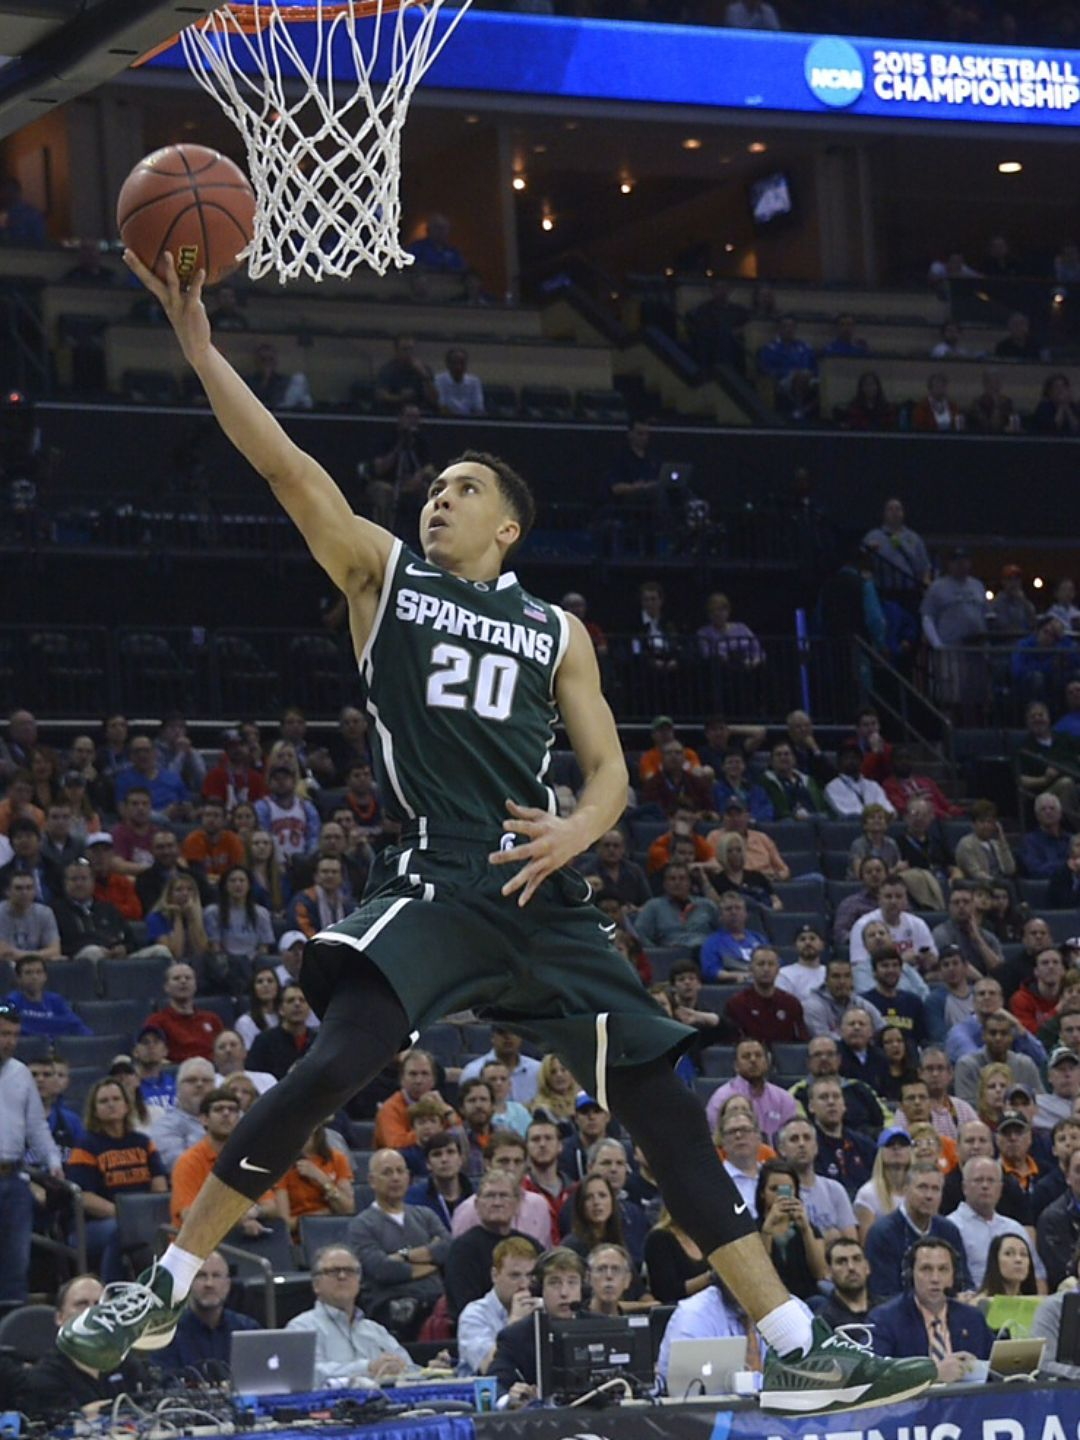 Spartans storm into another Sweet 16 Detroit news